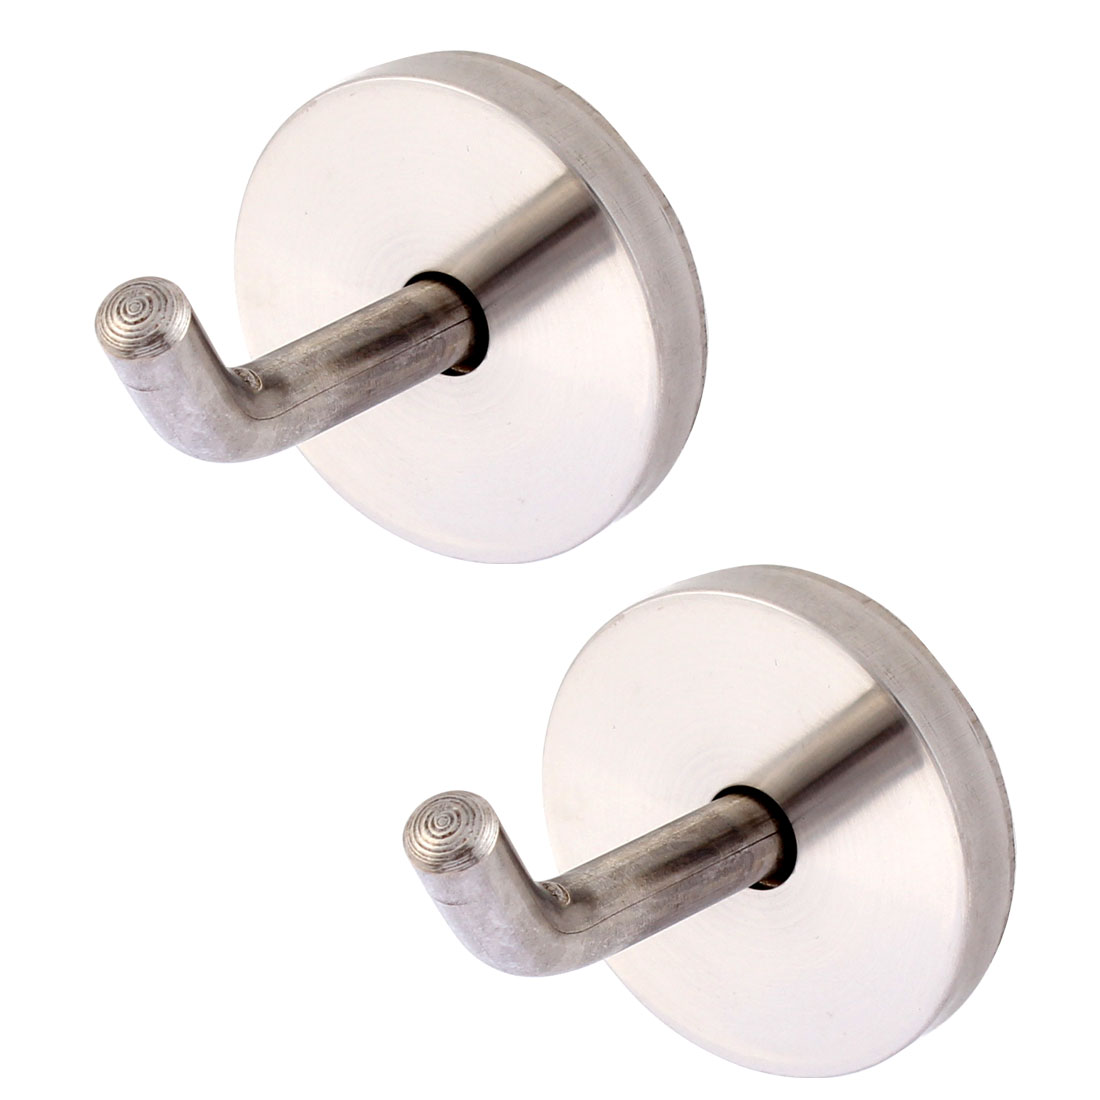 Wall Mount Coat Towel Hanging Hook Hanger 40 x 47mm 2PCS